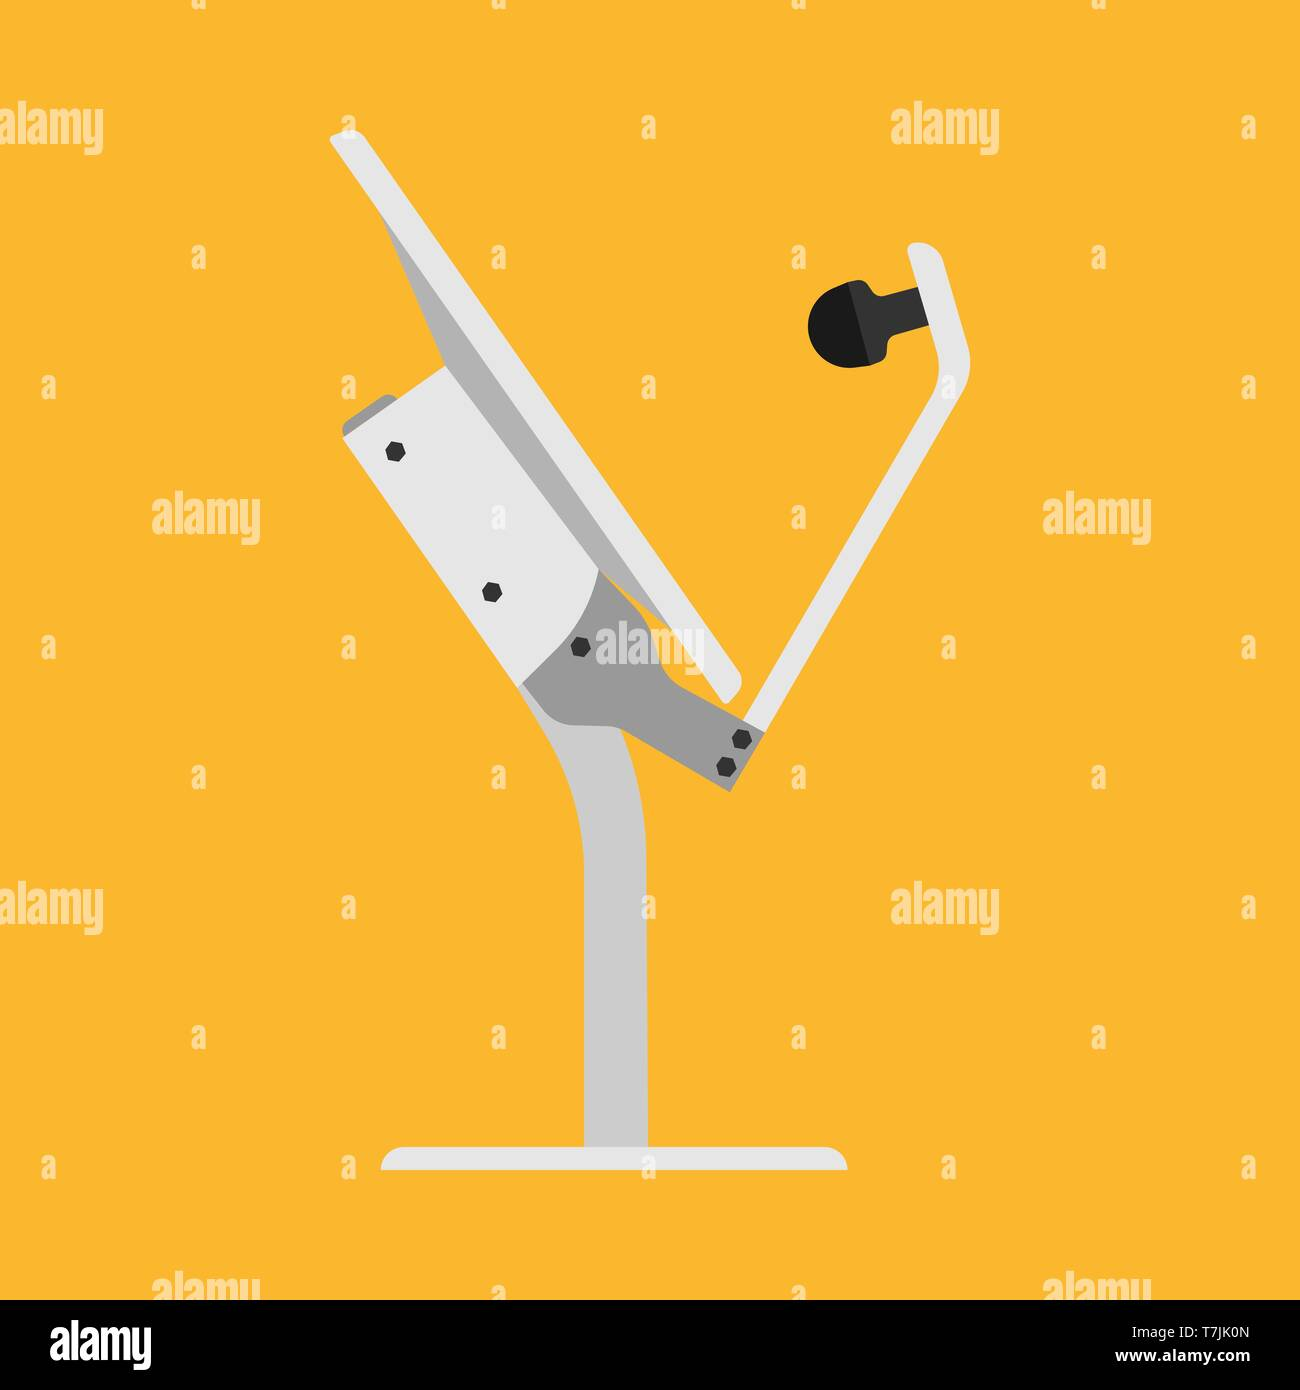 Tv Antenna Broadcast Media Vector Icon Technology Channel Signal Dish Receiver Satellite Cartoon Tower Station Network Stock Vector Image Art Alamy